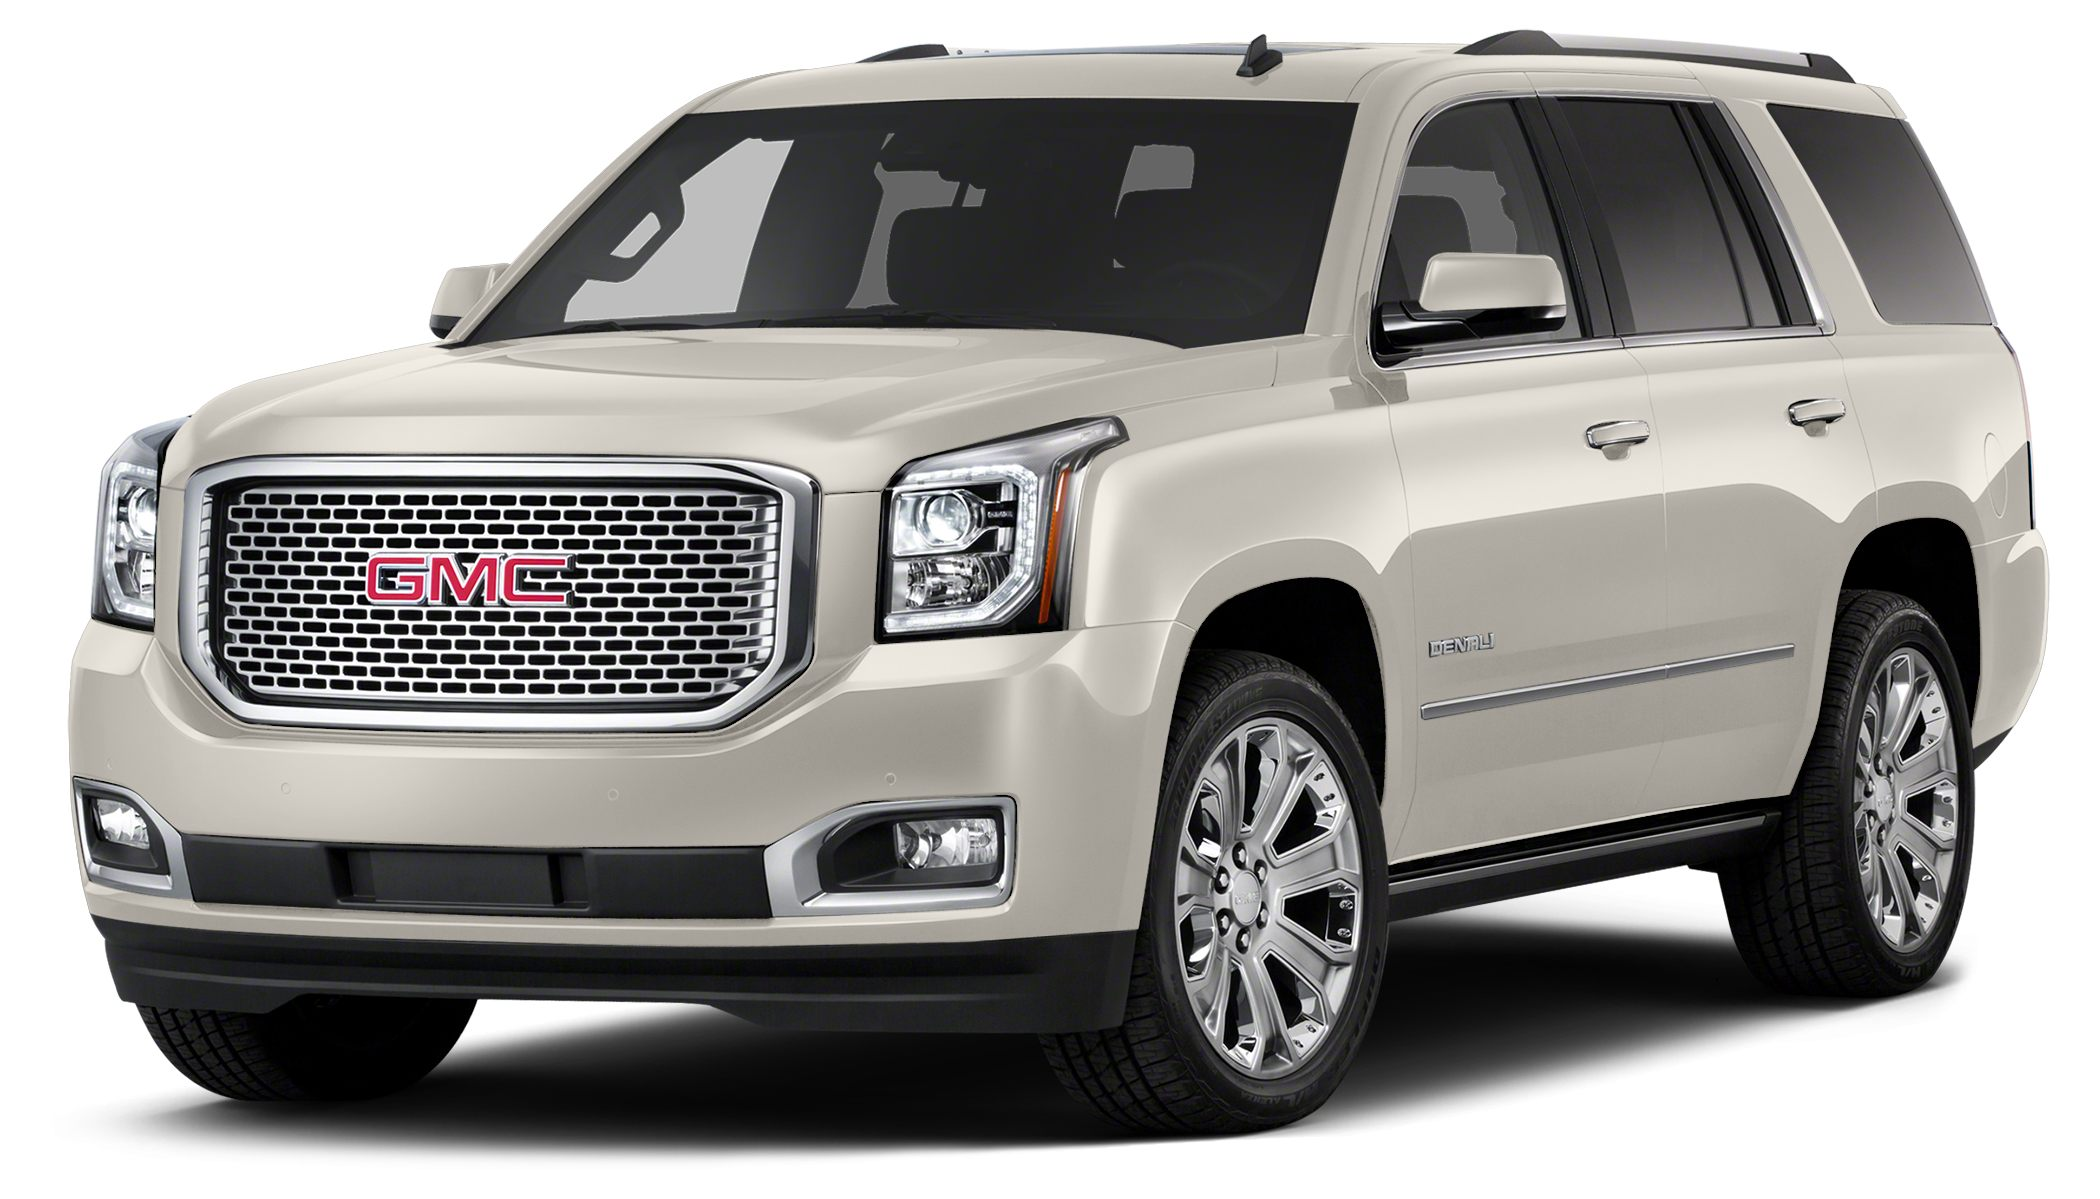 2015 GMC Yukon Denali Enjoy the open road in this 2015 GMC Yukon Denali with quality conveniences